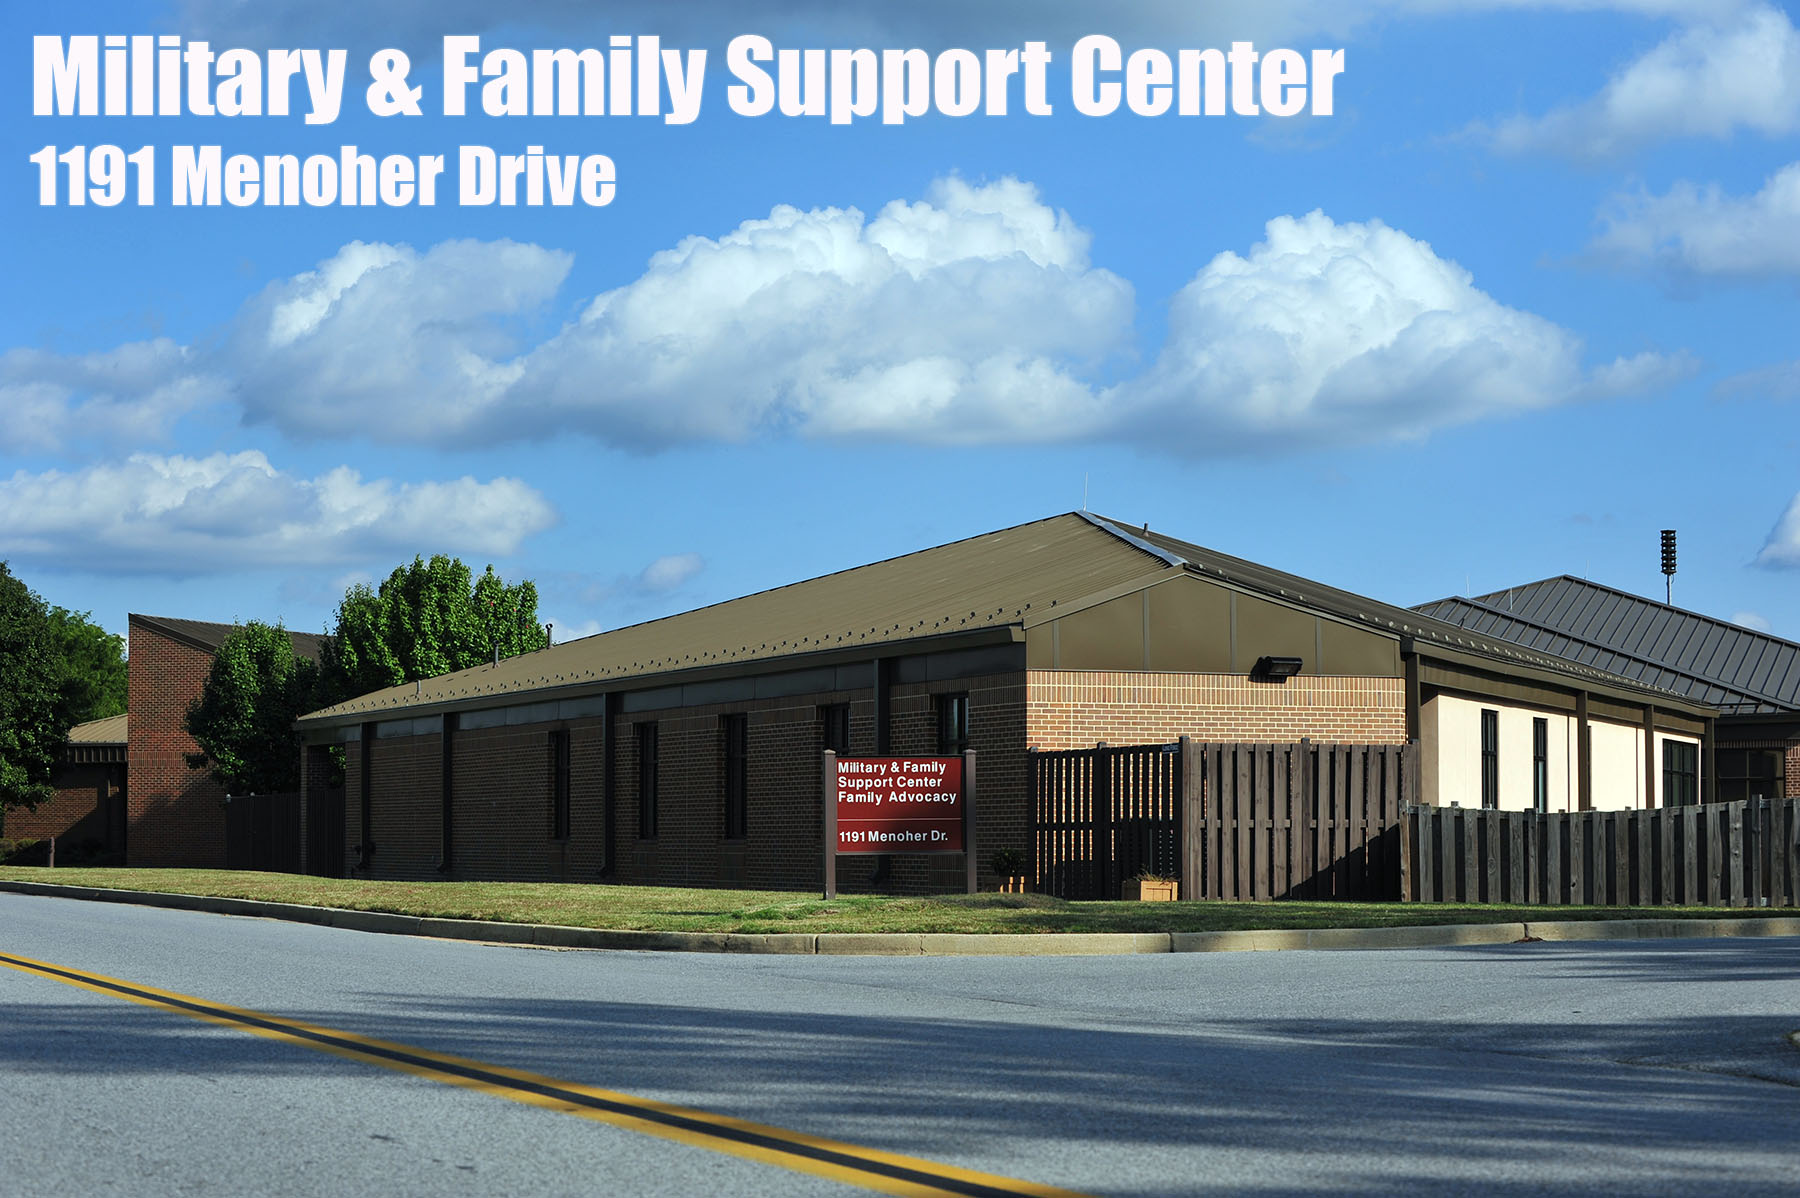 The Military & Family Support Center